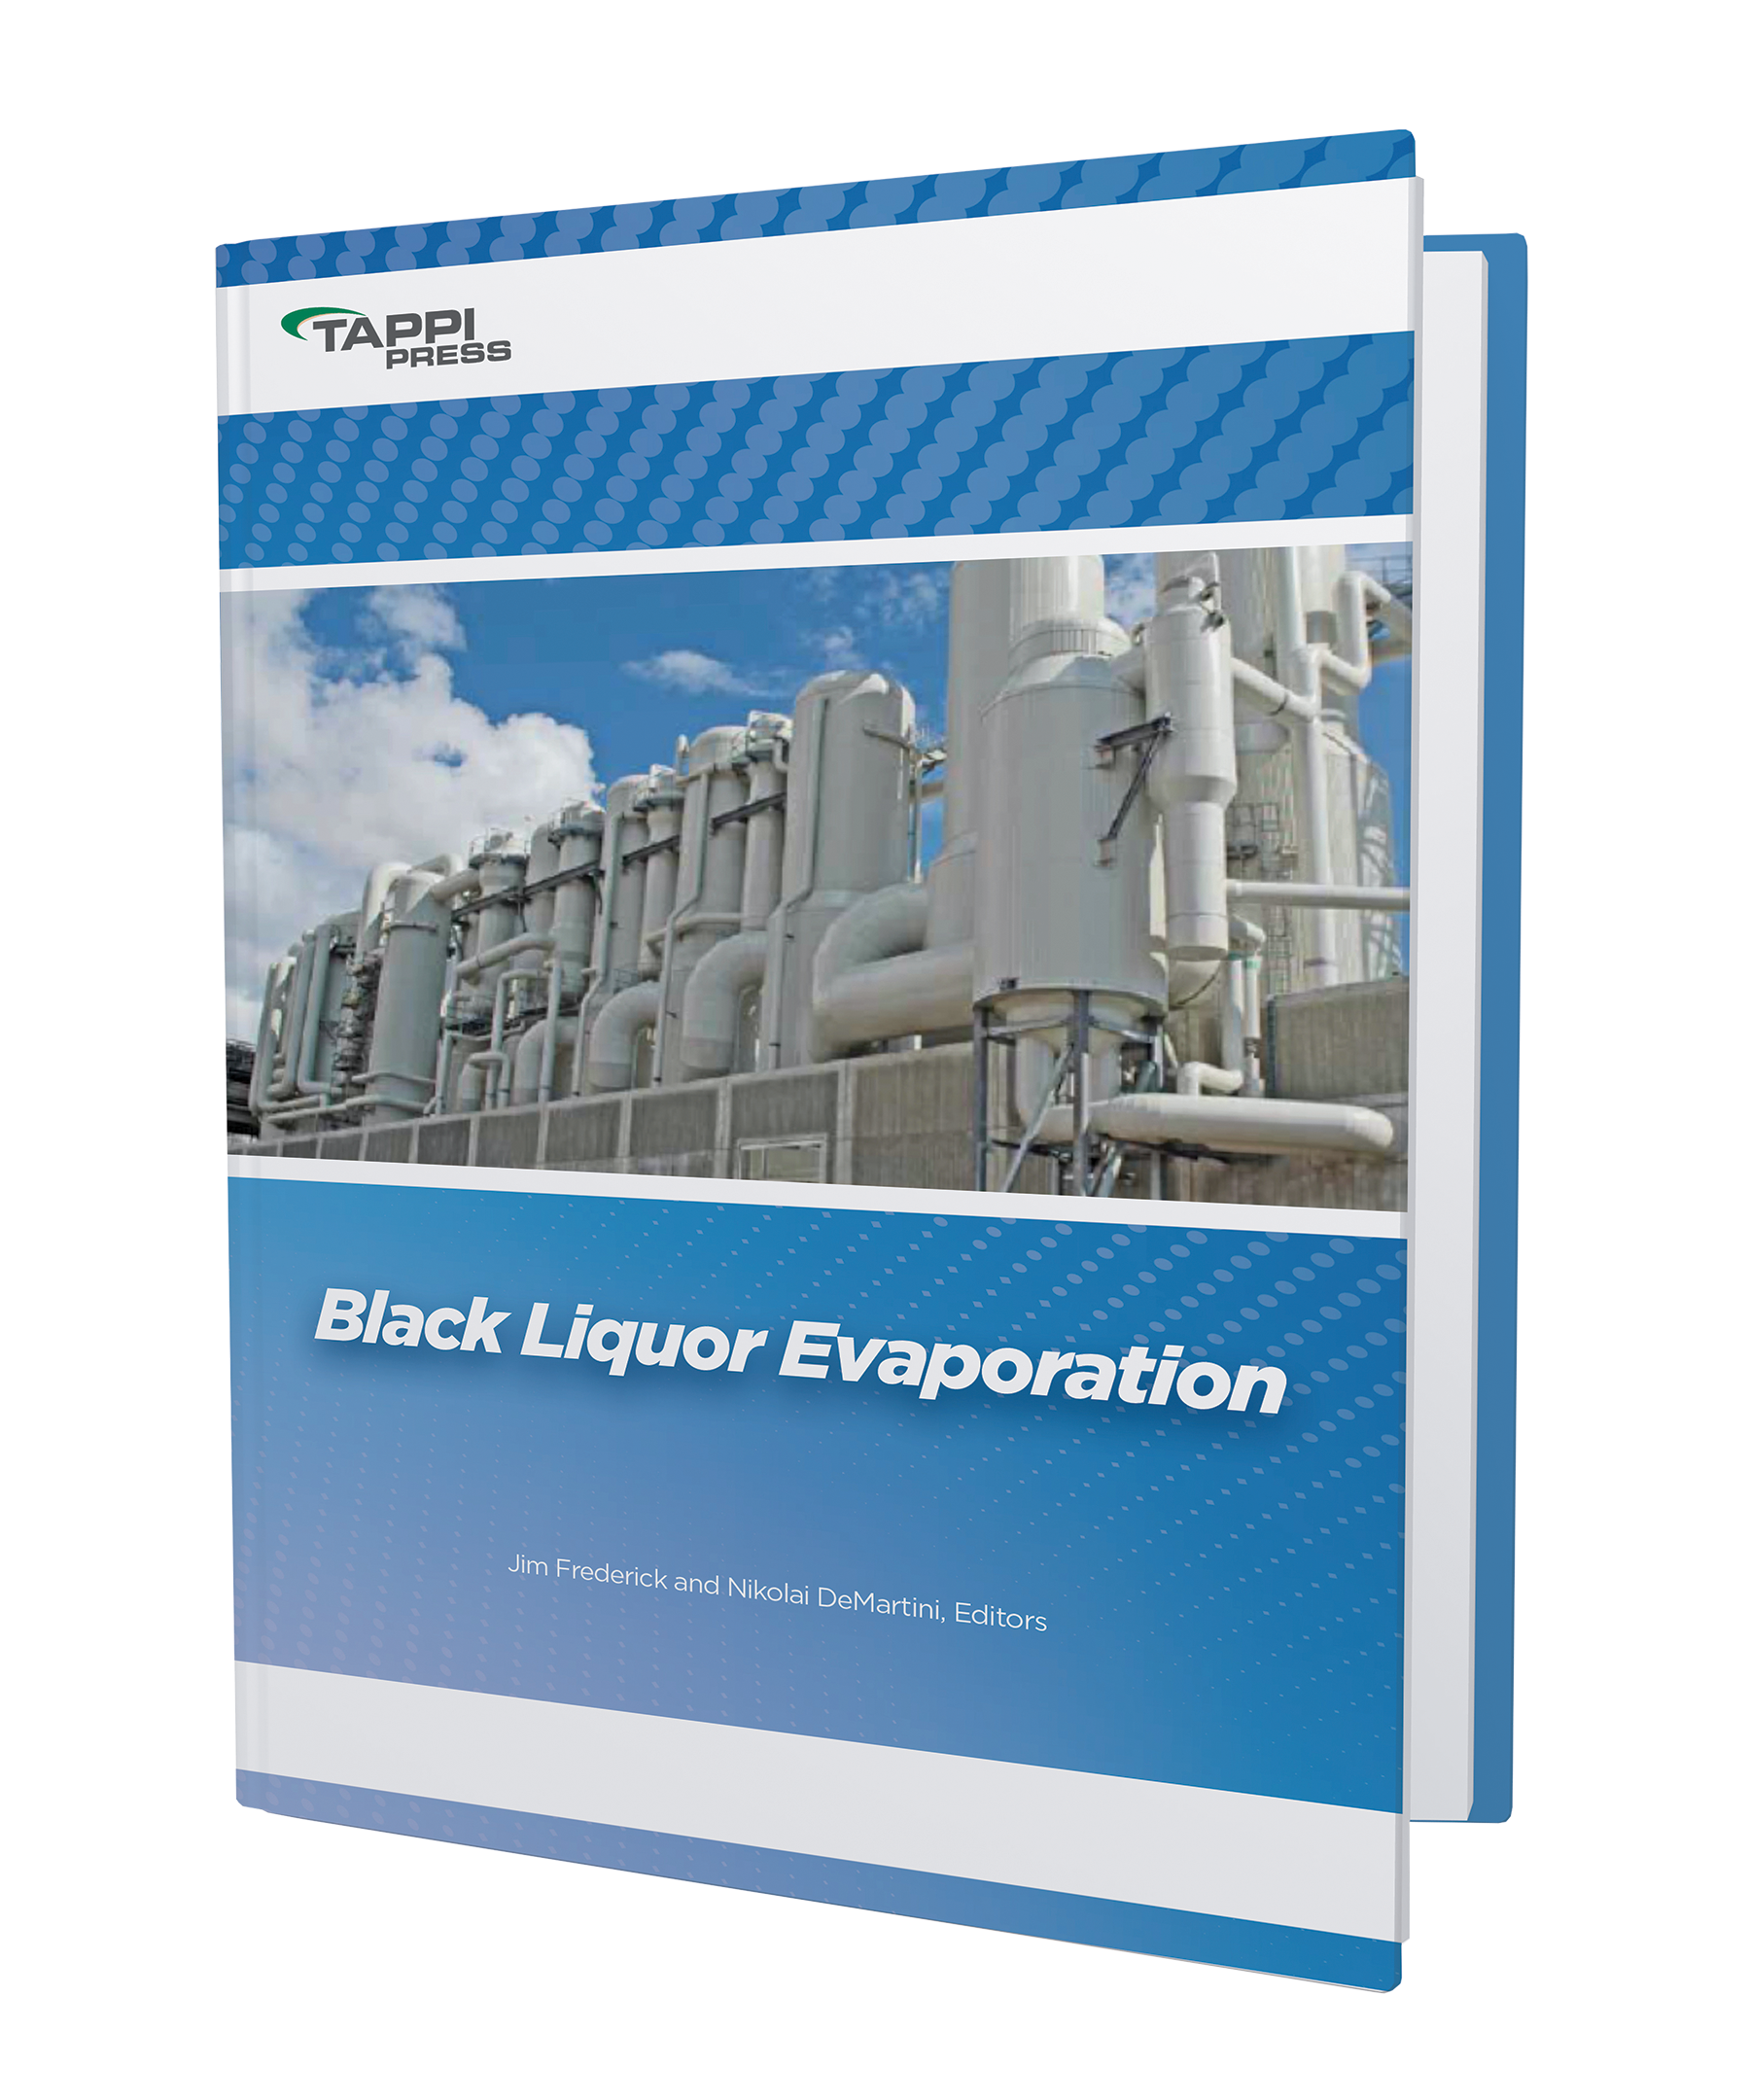 Black Liquor Evaporation